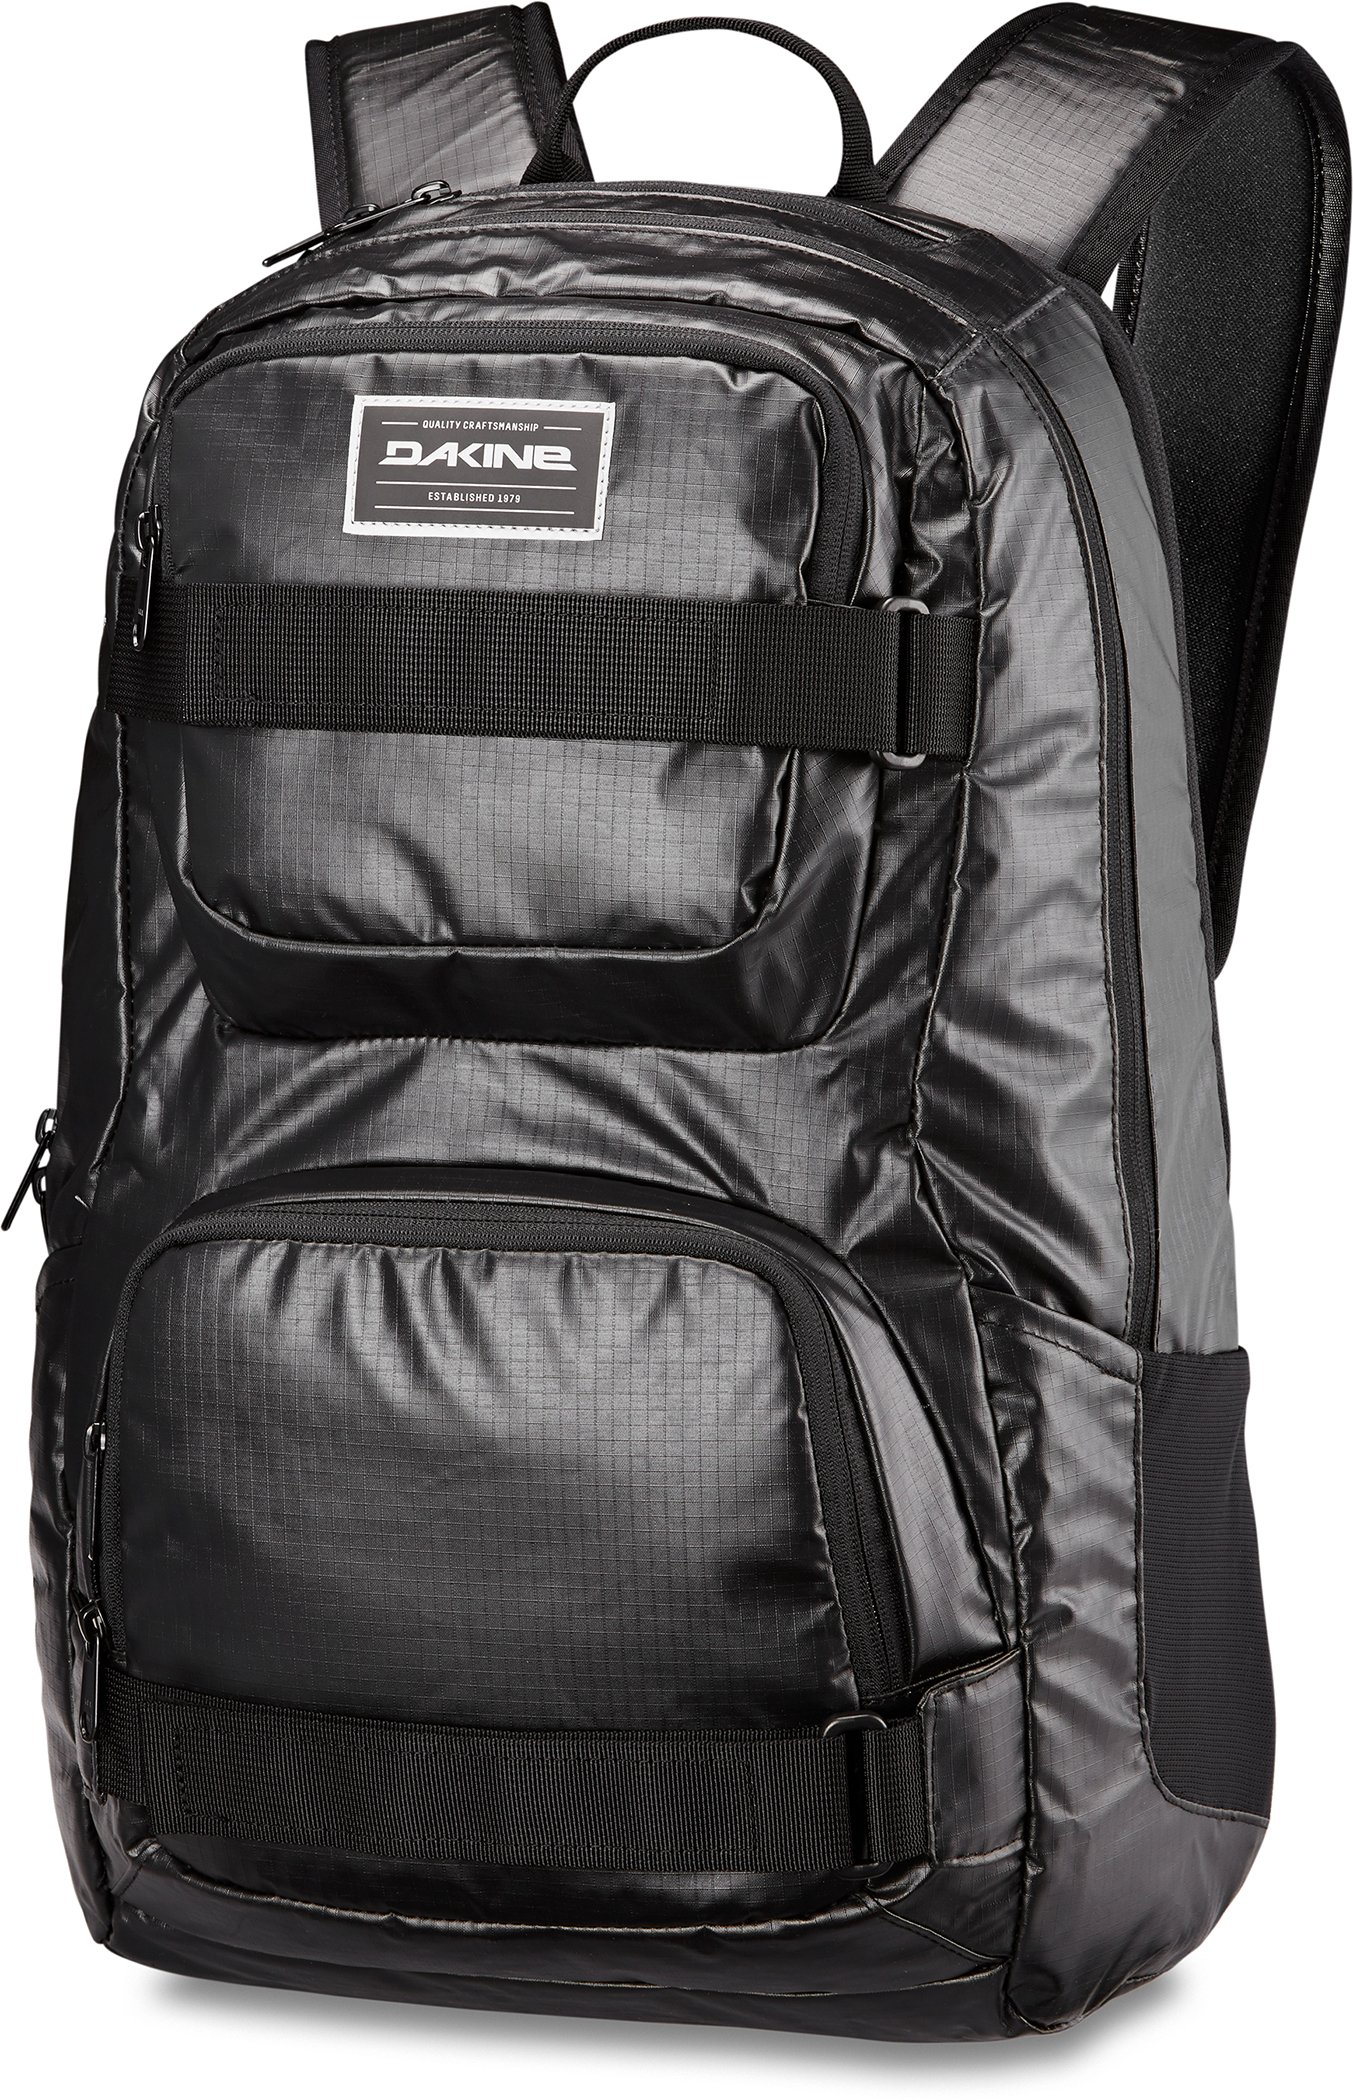 Dakine - Duel 26L Backpack - Padded Laptop & iPad Sleeve - Insulated Cooler Pocket - Mesh Side Pockets - 19'' x 12'' x 9'' (Storm)